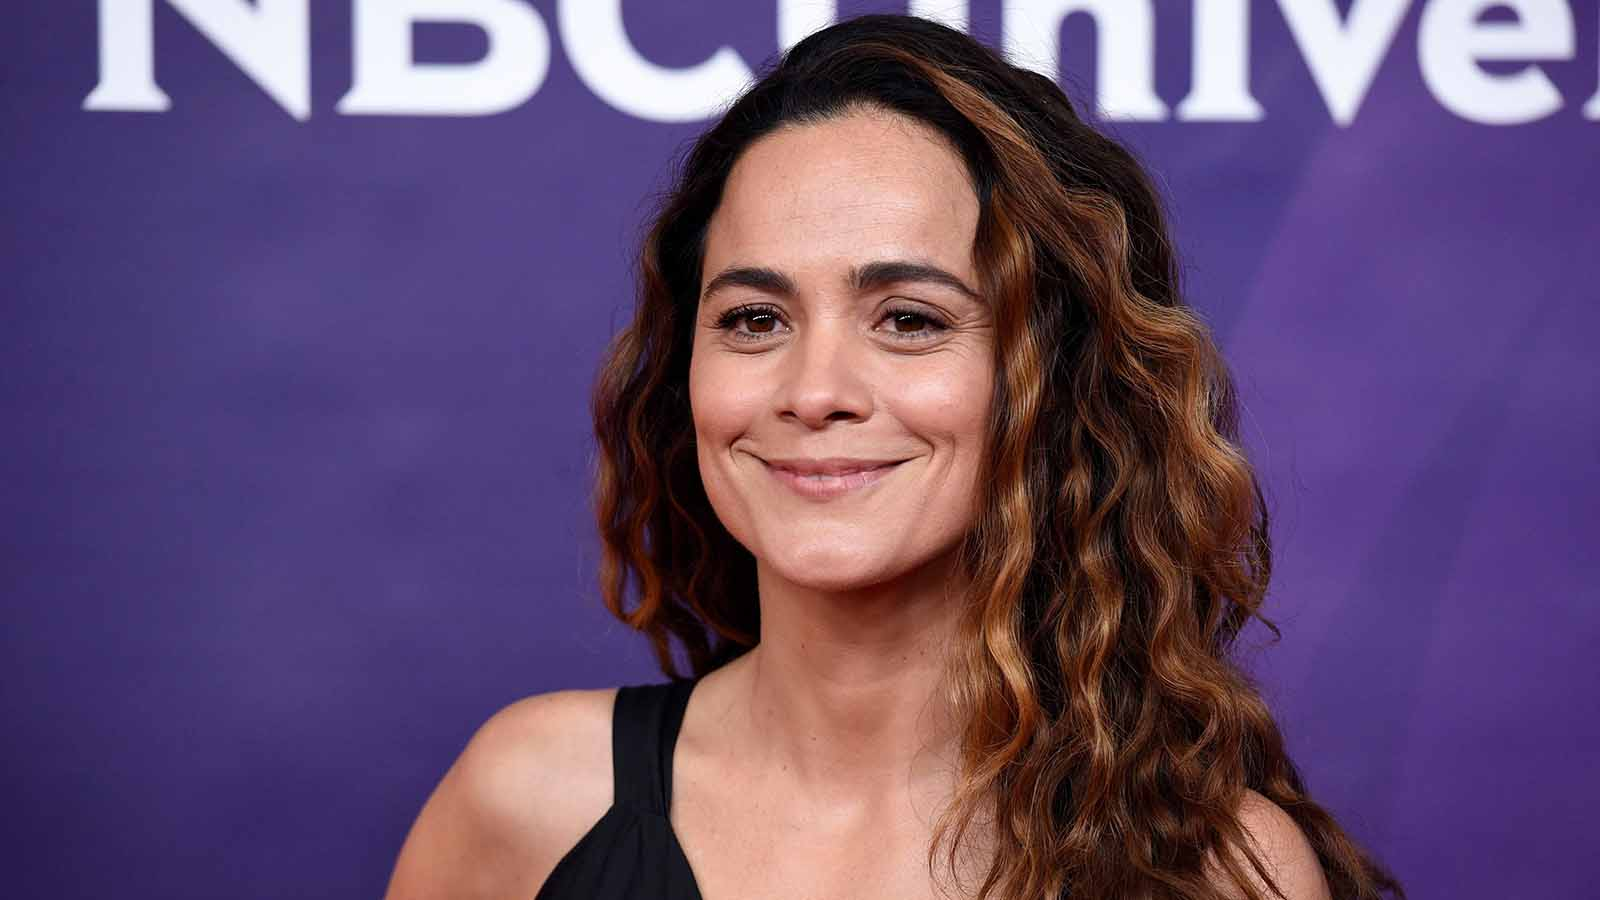 Since 'Queen of the South' season 5 is indefinitely delayed thanks to COVID-19, we're looking at the cast's filmography to see where we can find them.